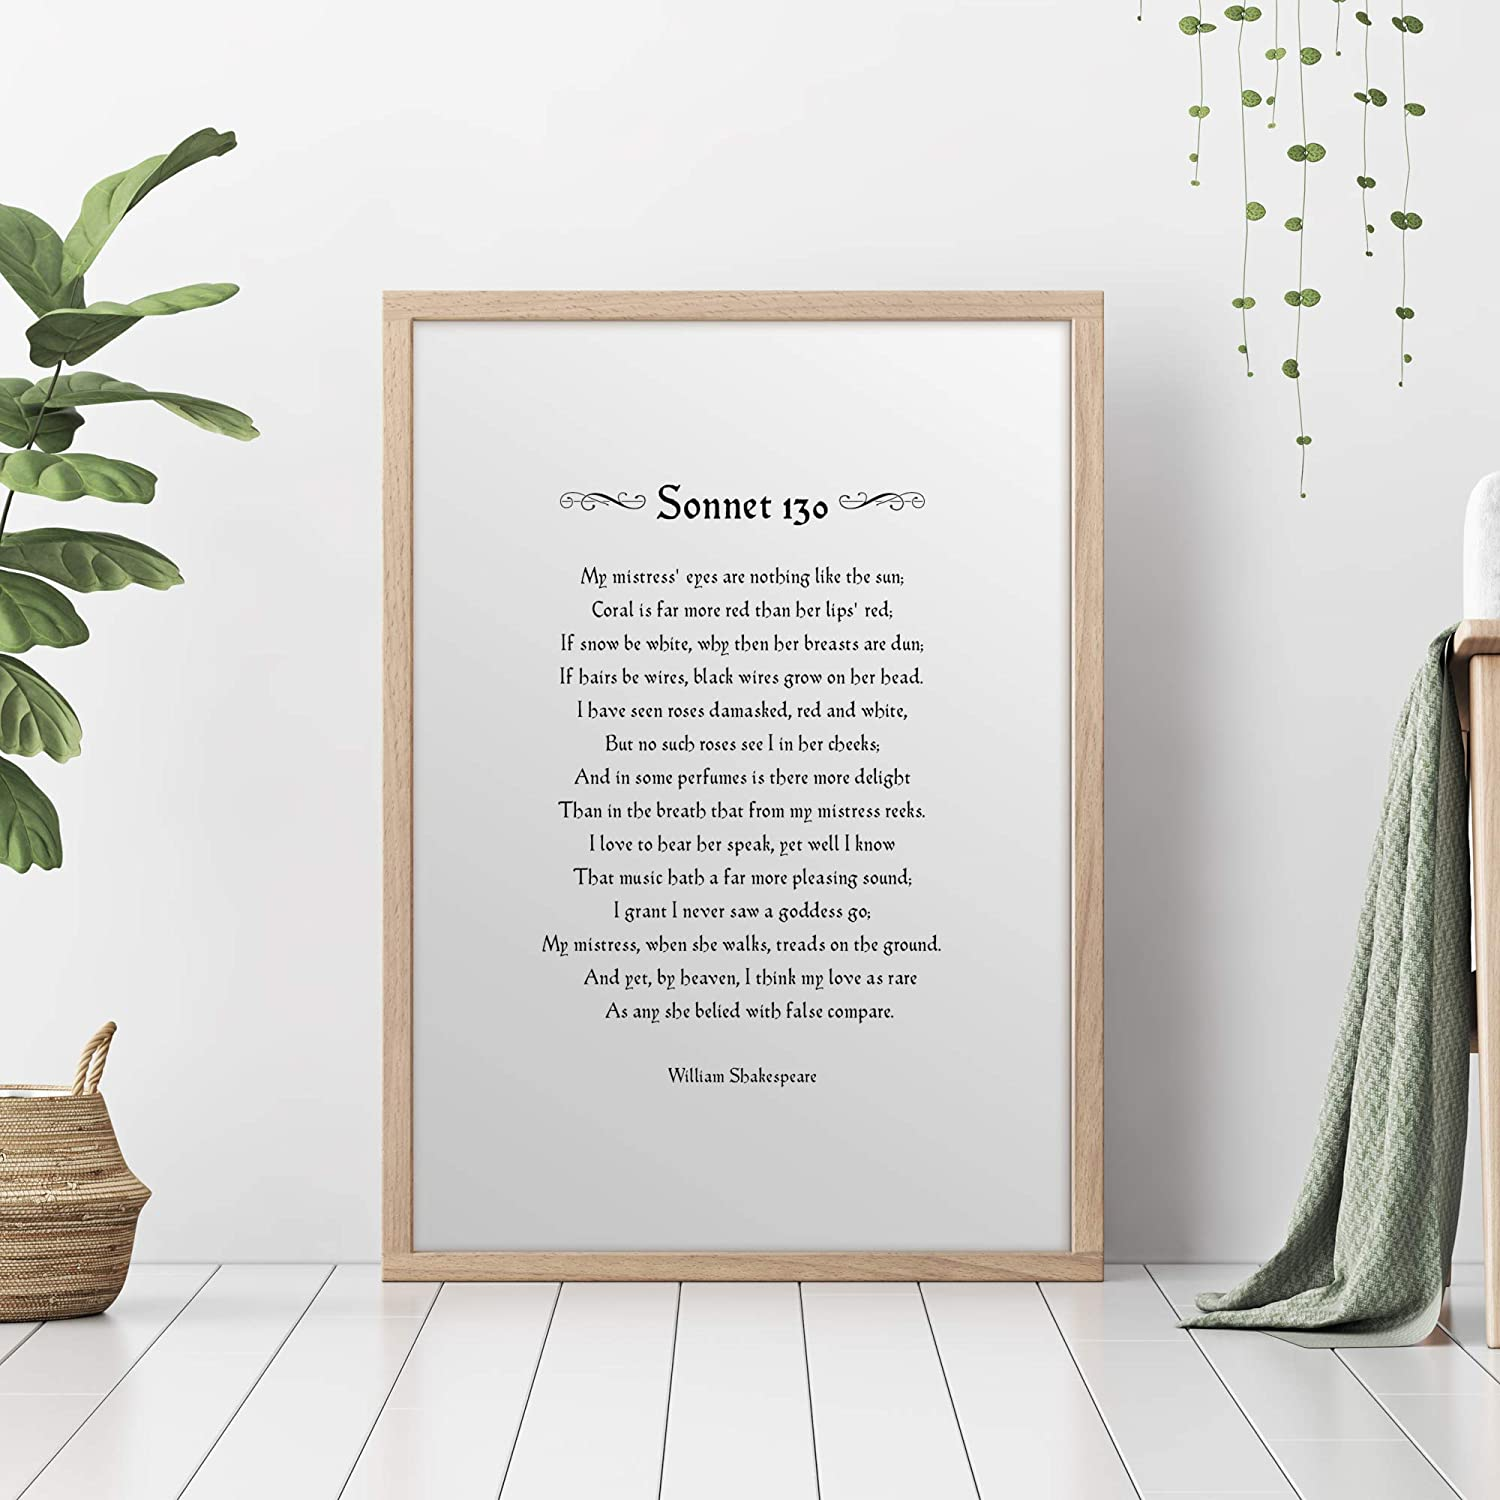 My mistress/' eyes are nothing like the sun Unframed Print Shakespeare Sonnet 130 Romantic Poetry